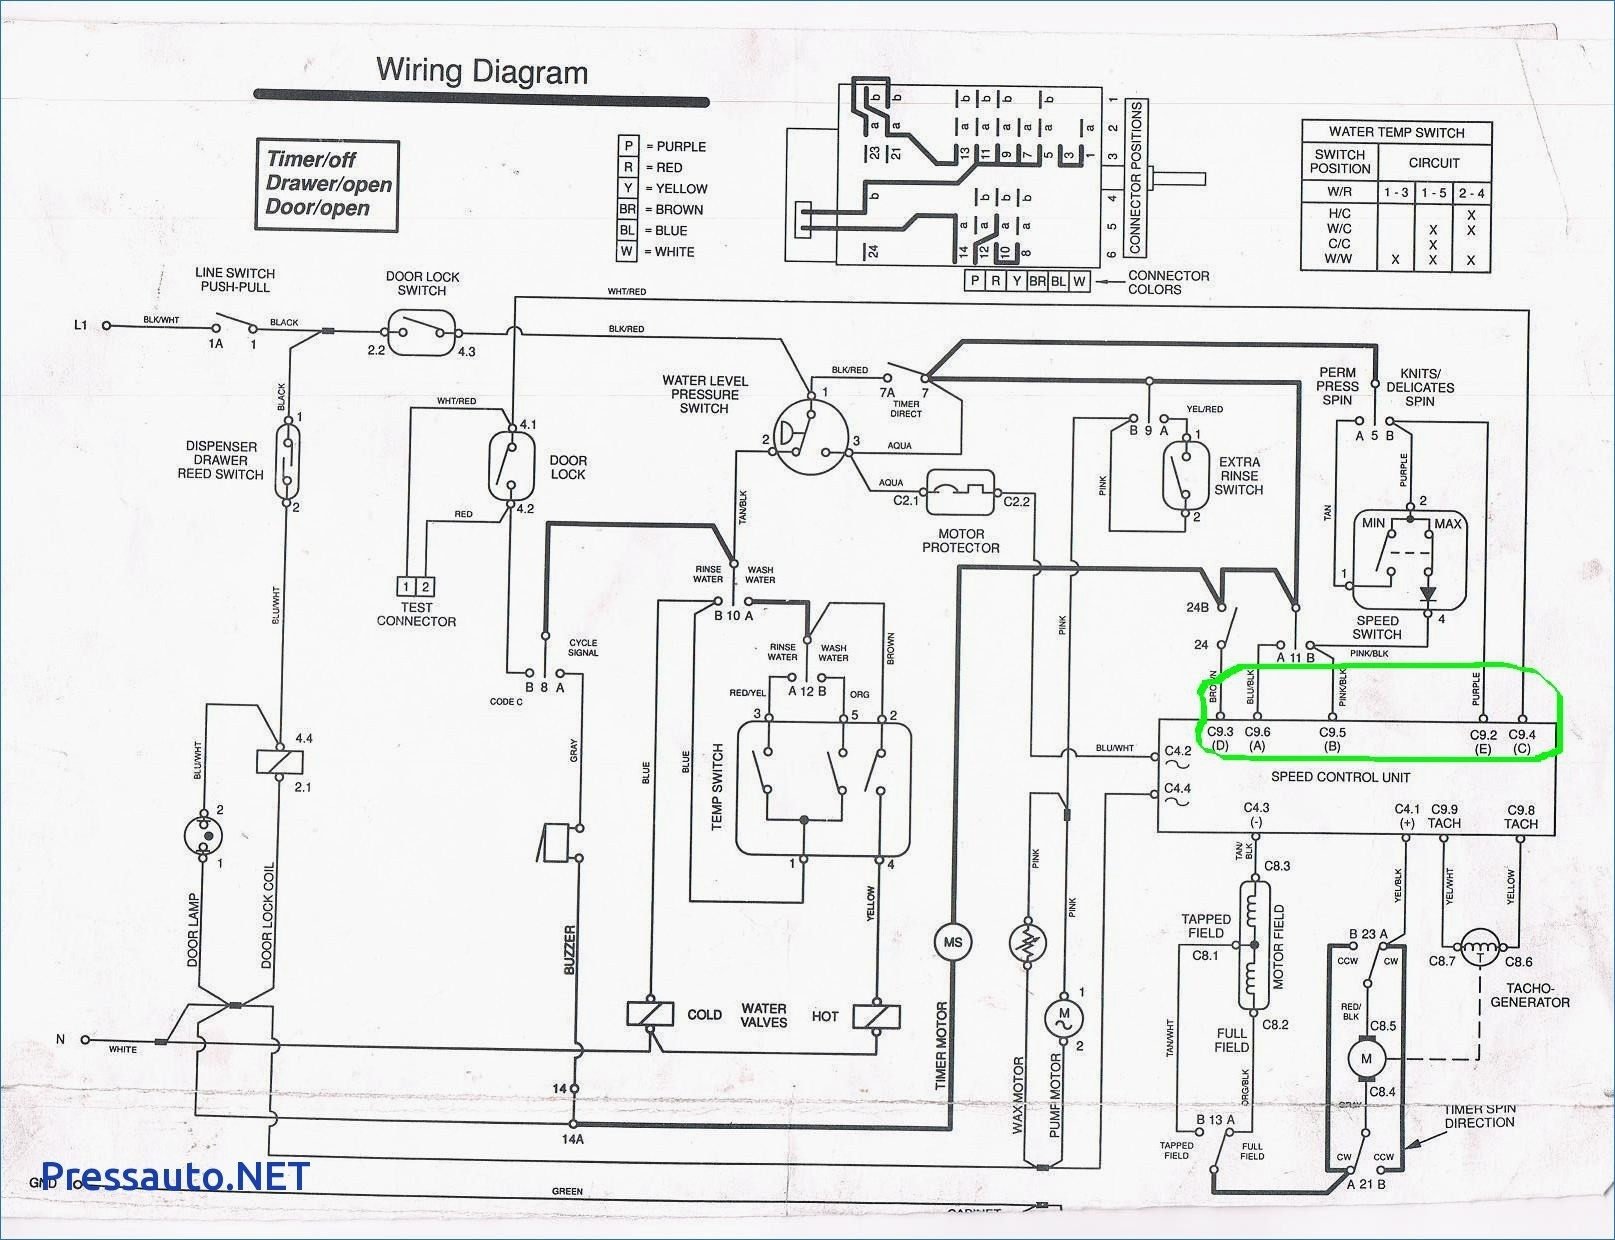 whirlpool washing machine wiring diagram | free wiring diagram whirlpool 4 wire lid switch wiring diagram 4 prong toggle switch wiring diagram #8